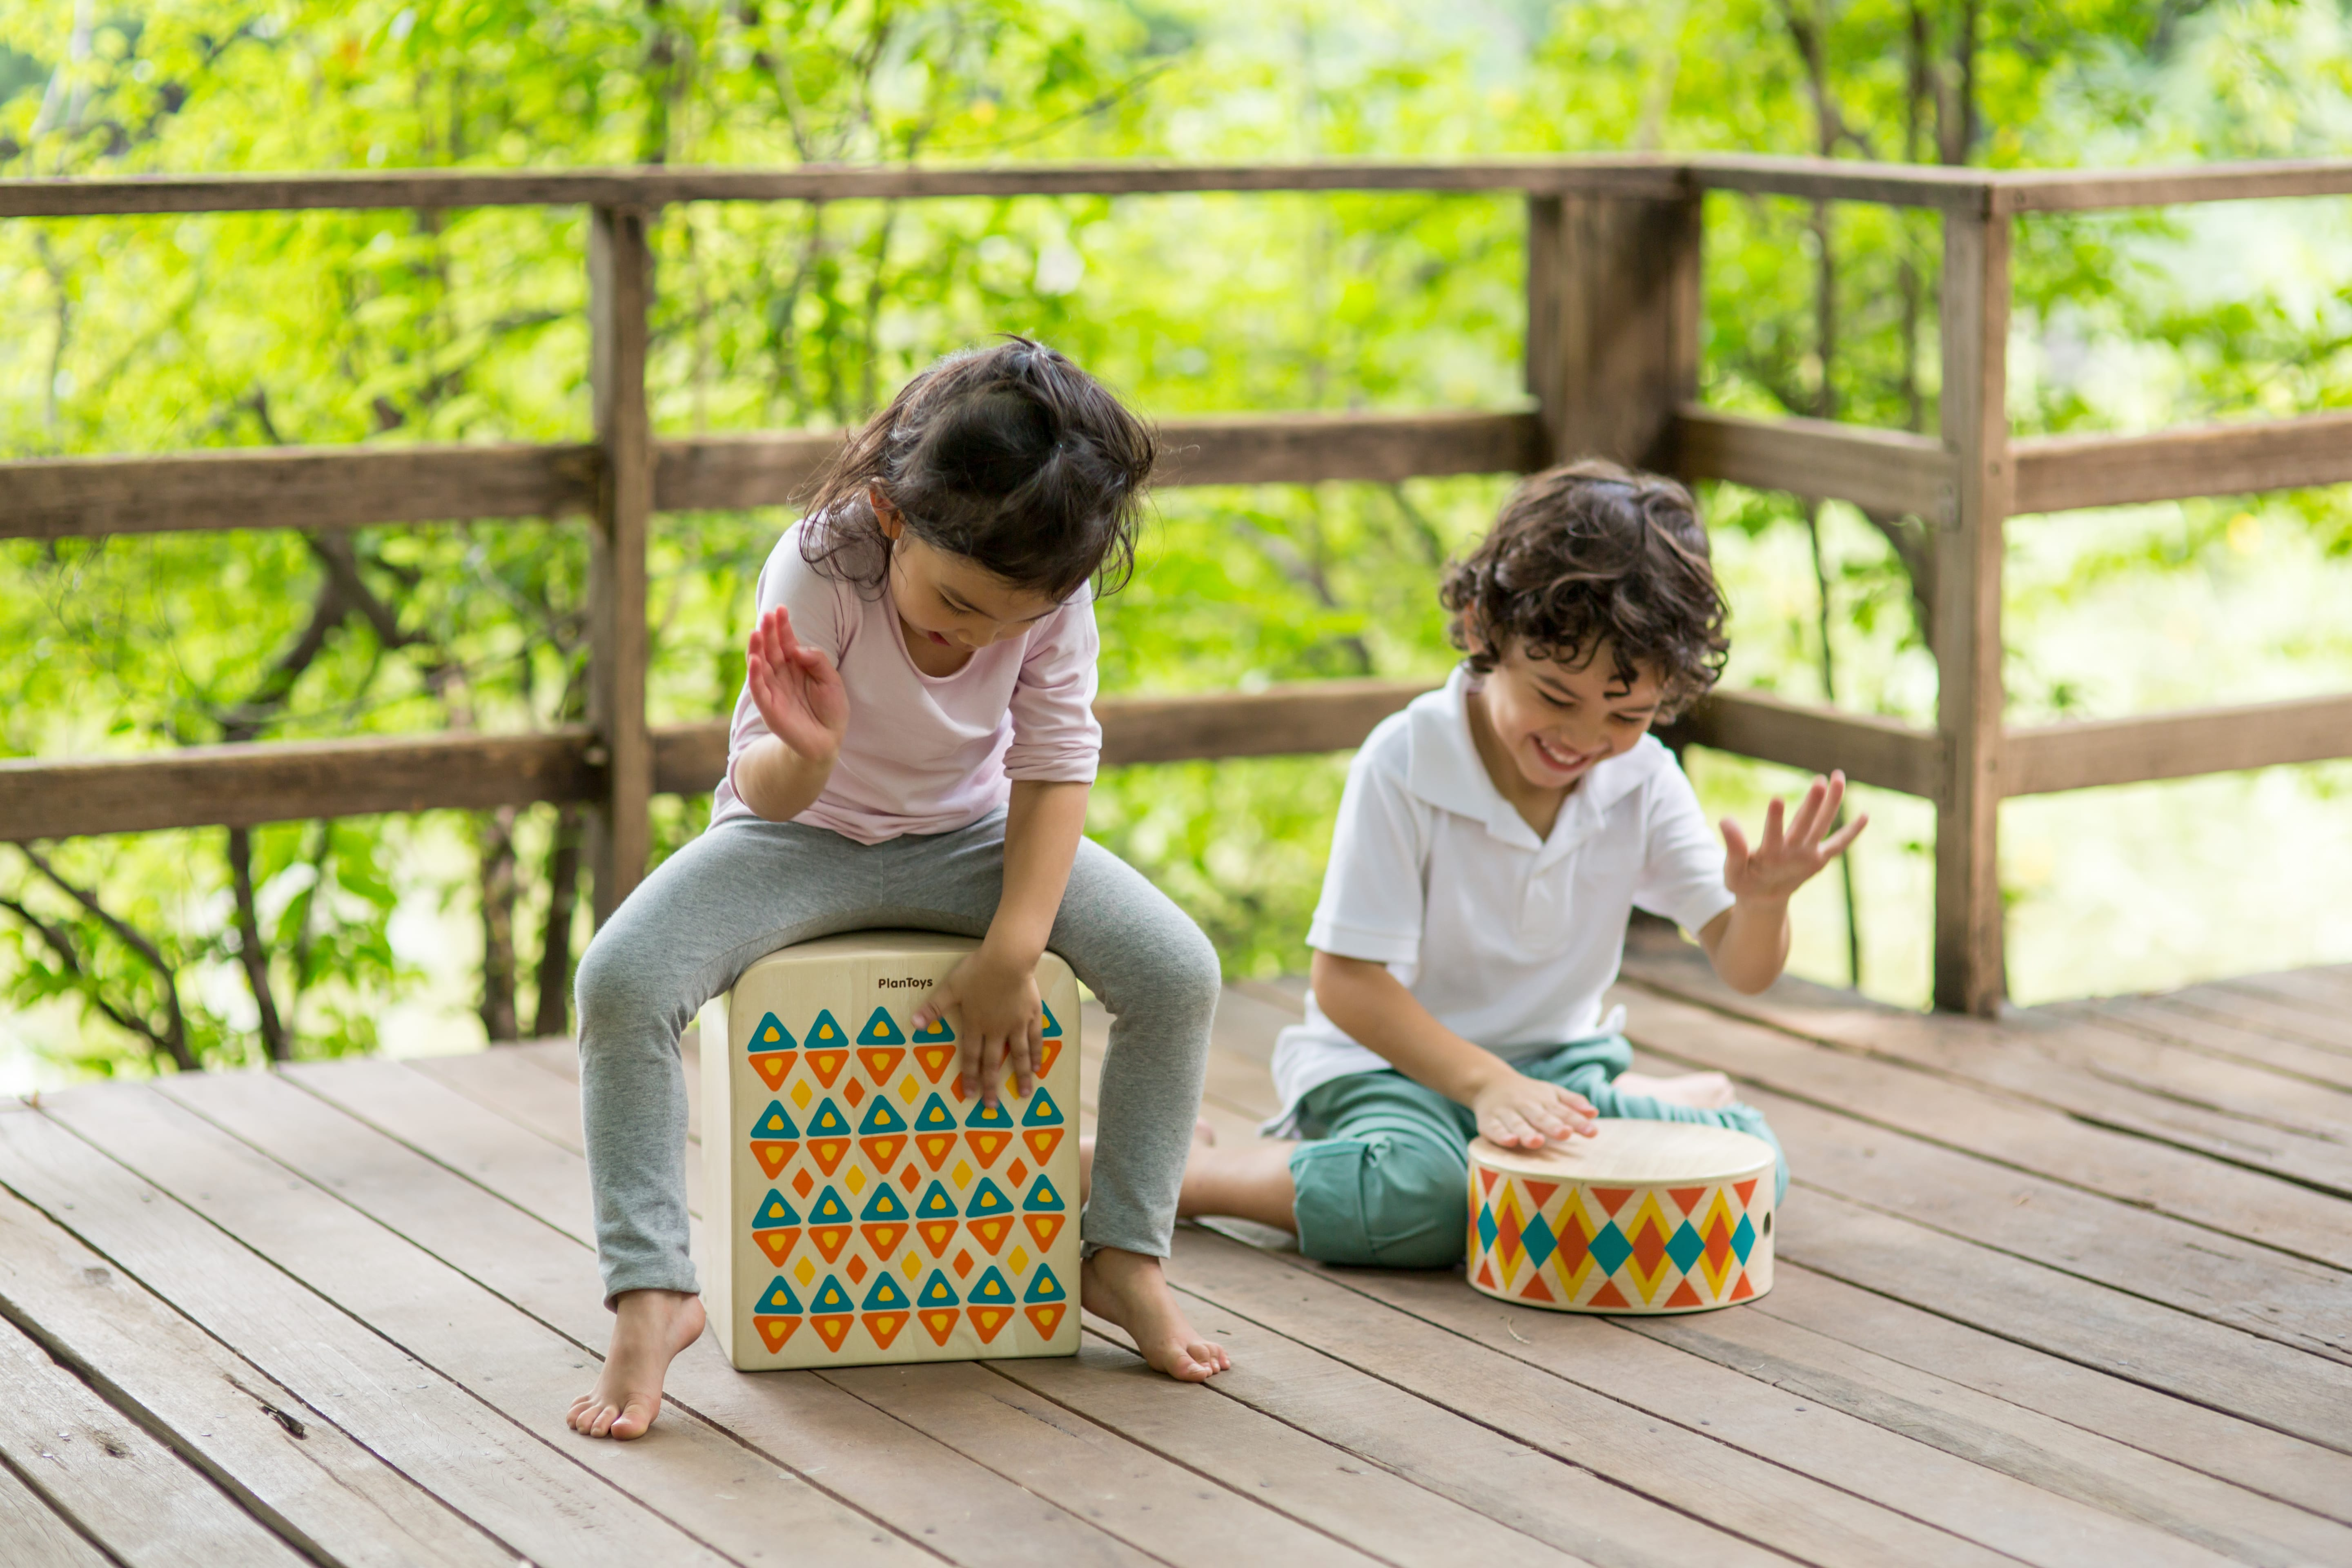 6424_PlanToys_RHYTHM_BOX_II_Music_Musical_Auditory_Concentration_Emotion_Coordination_Creative_3yrs_Wooden_toys_Education_toys_Safety_Toys_Non-toxic_2.jpg